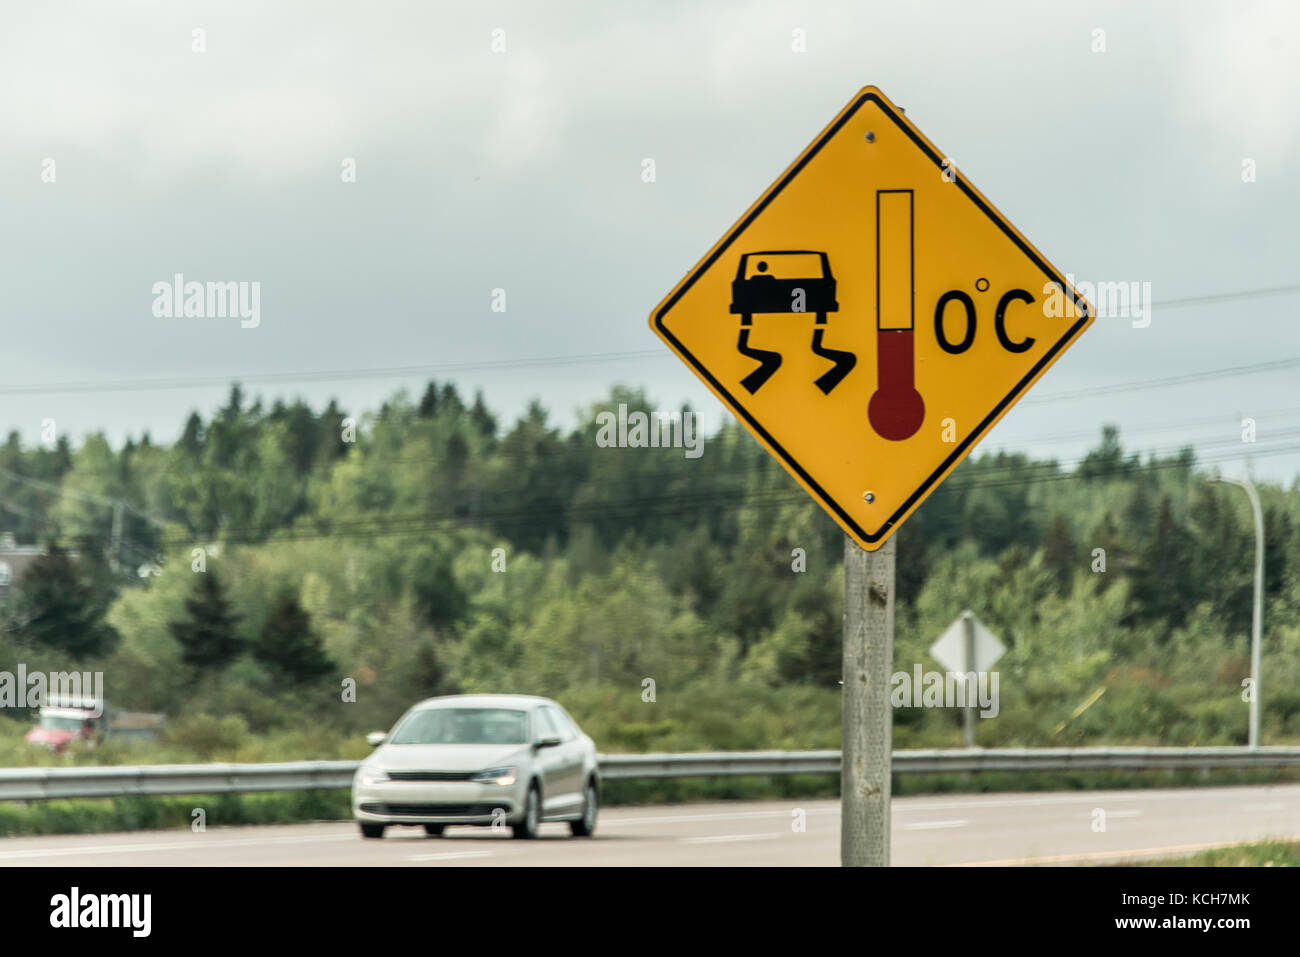 warning sign for slippery icy road on trans canada - Stock Image